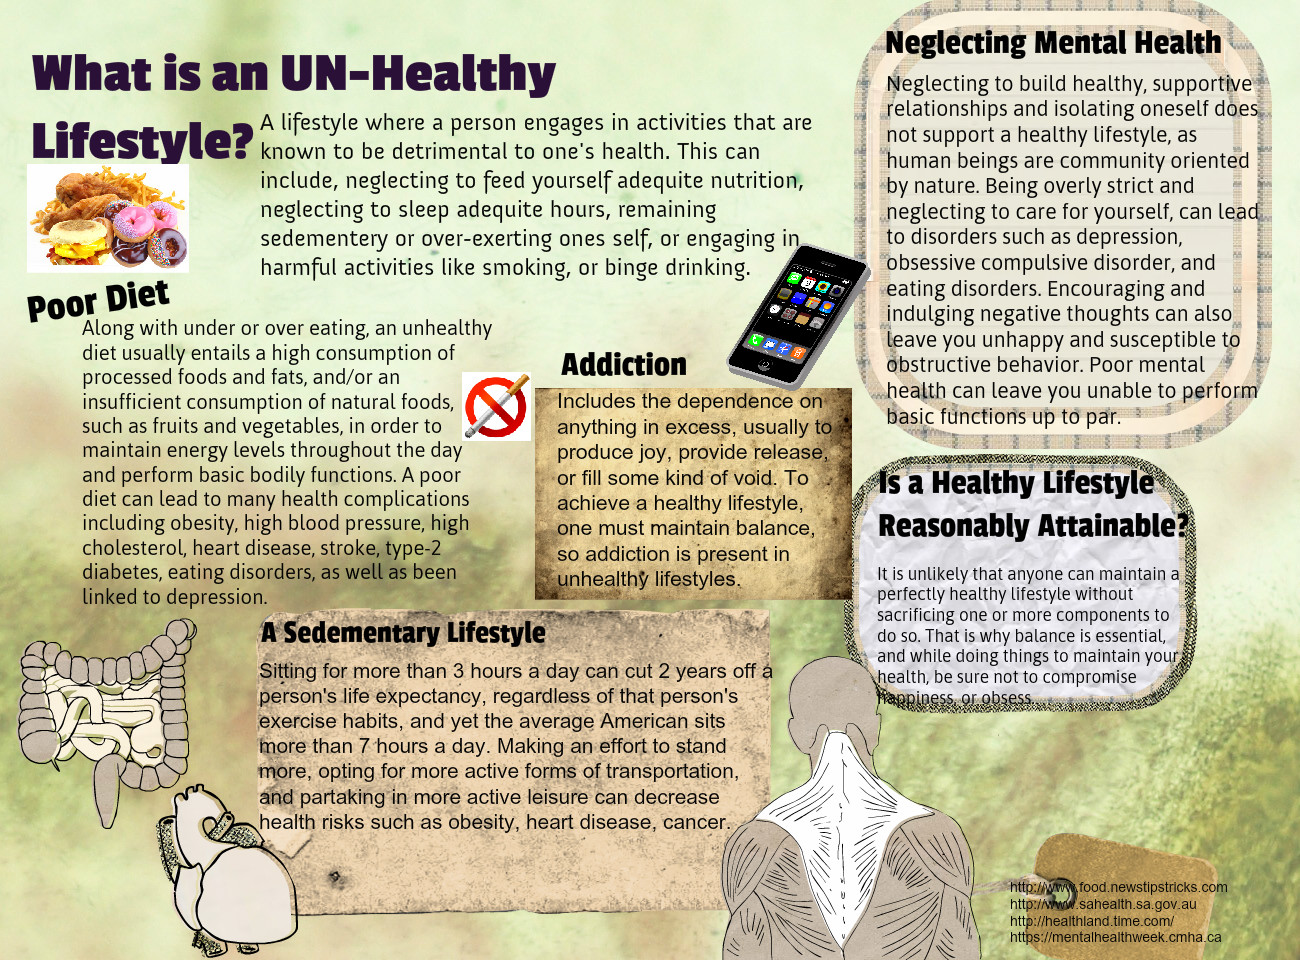 What is an UN-Healthy Lifestyle